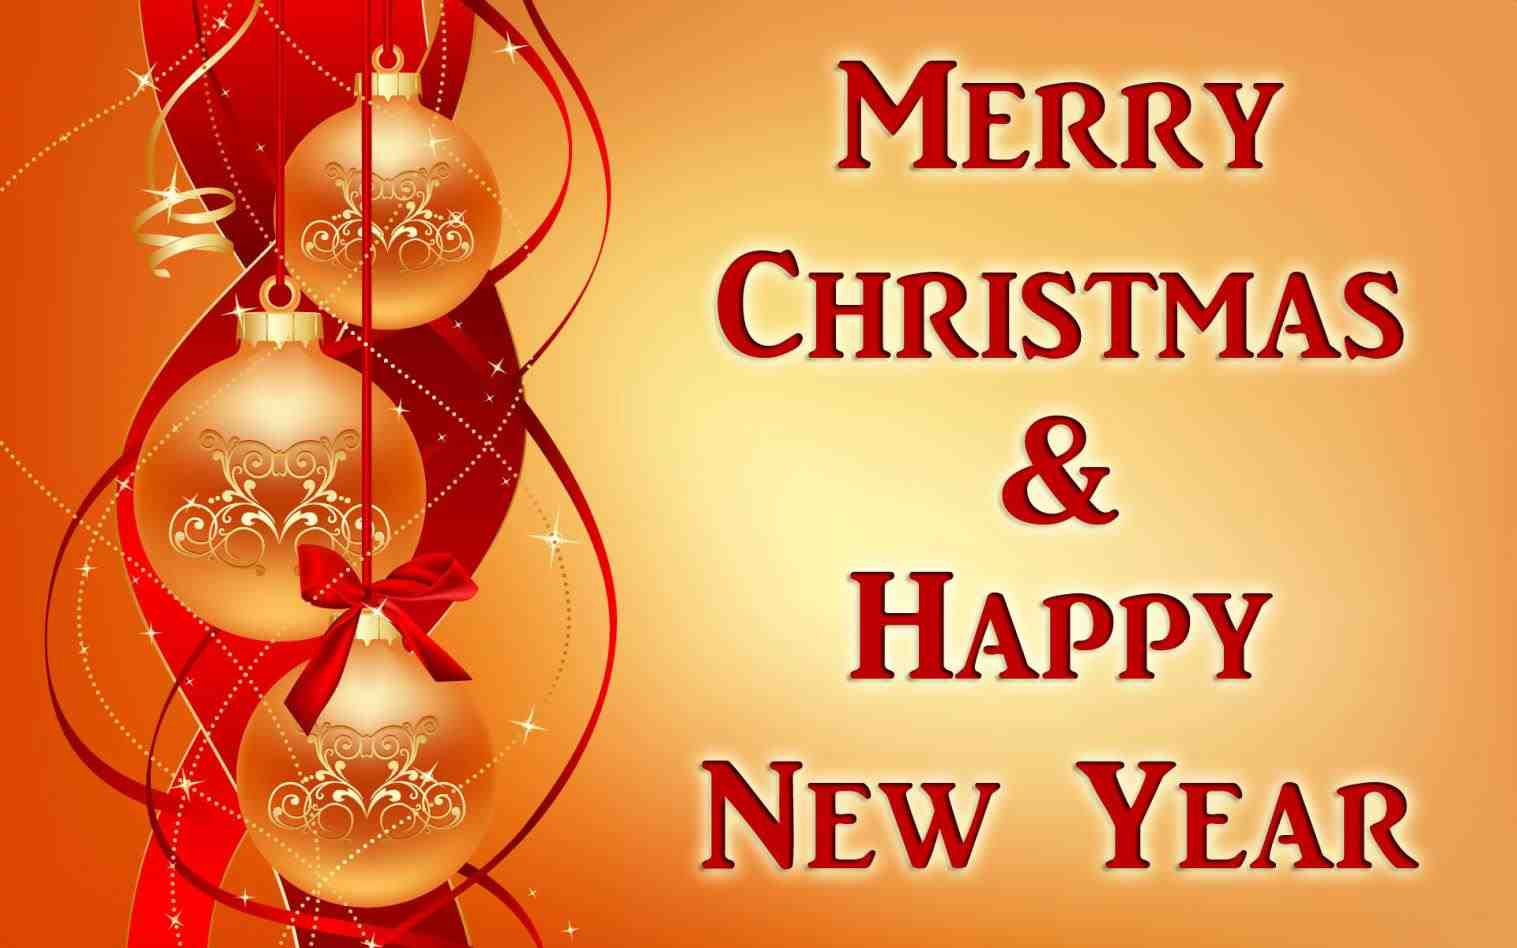 merry christmas and happy new year - Merry Christmas In Greek Language